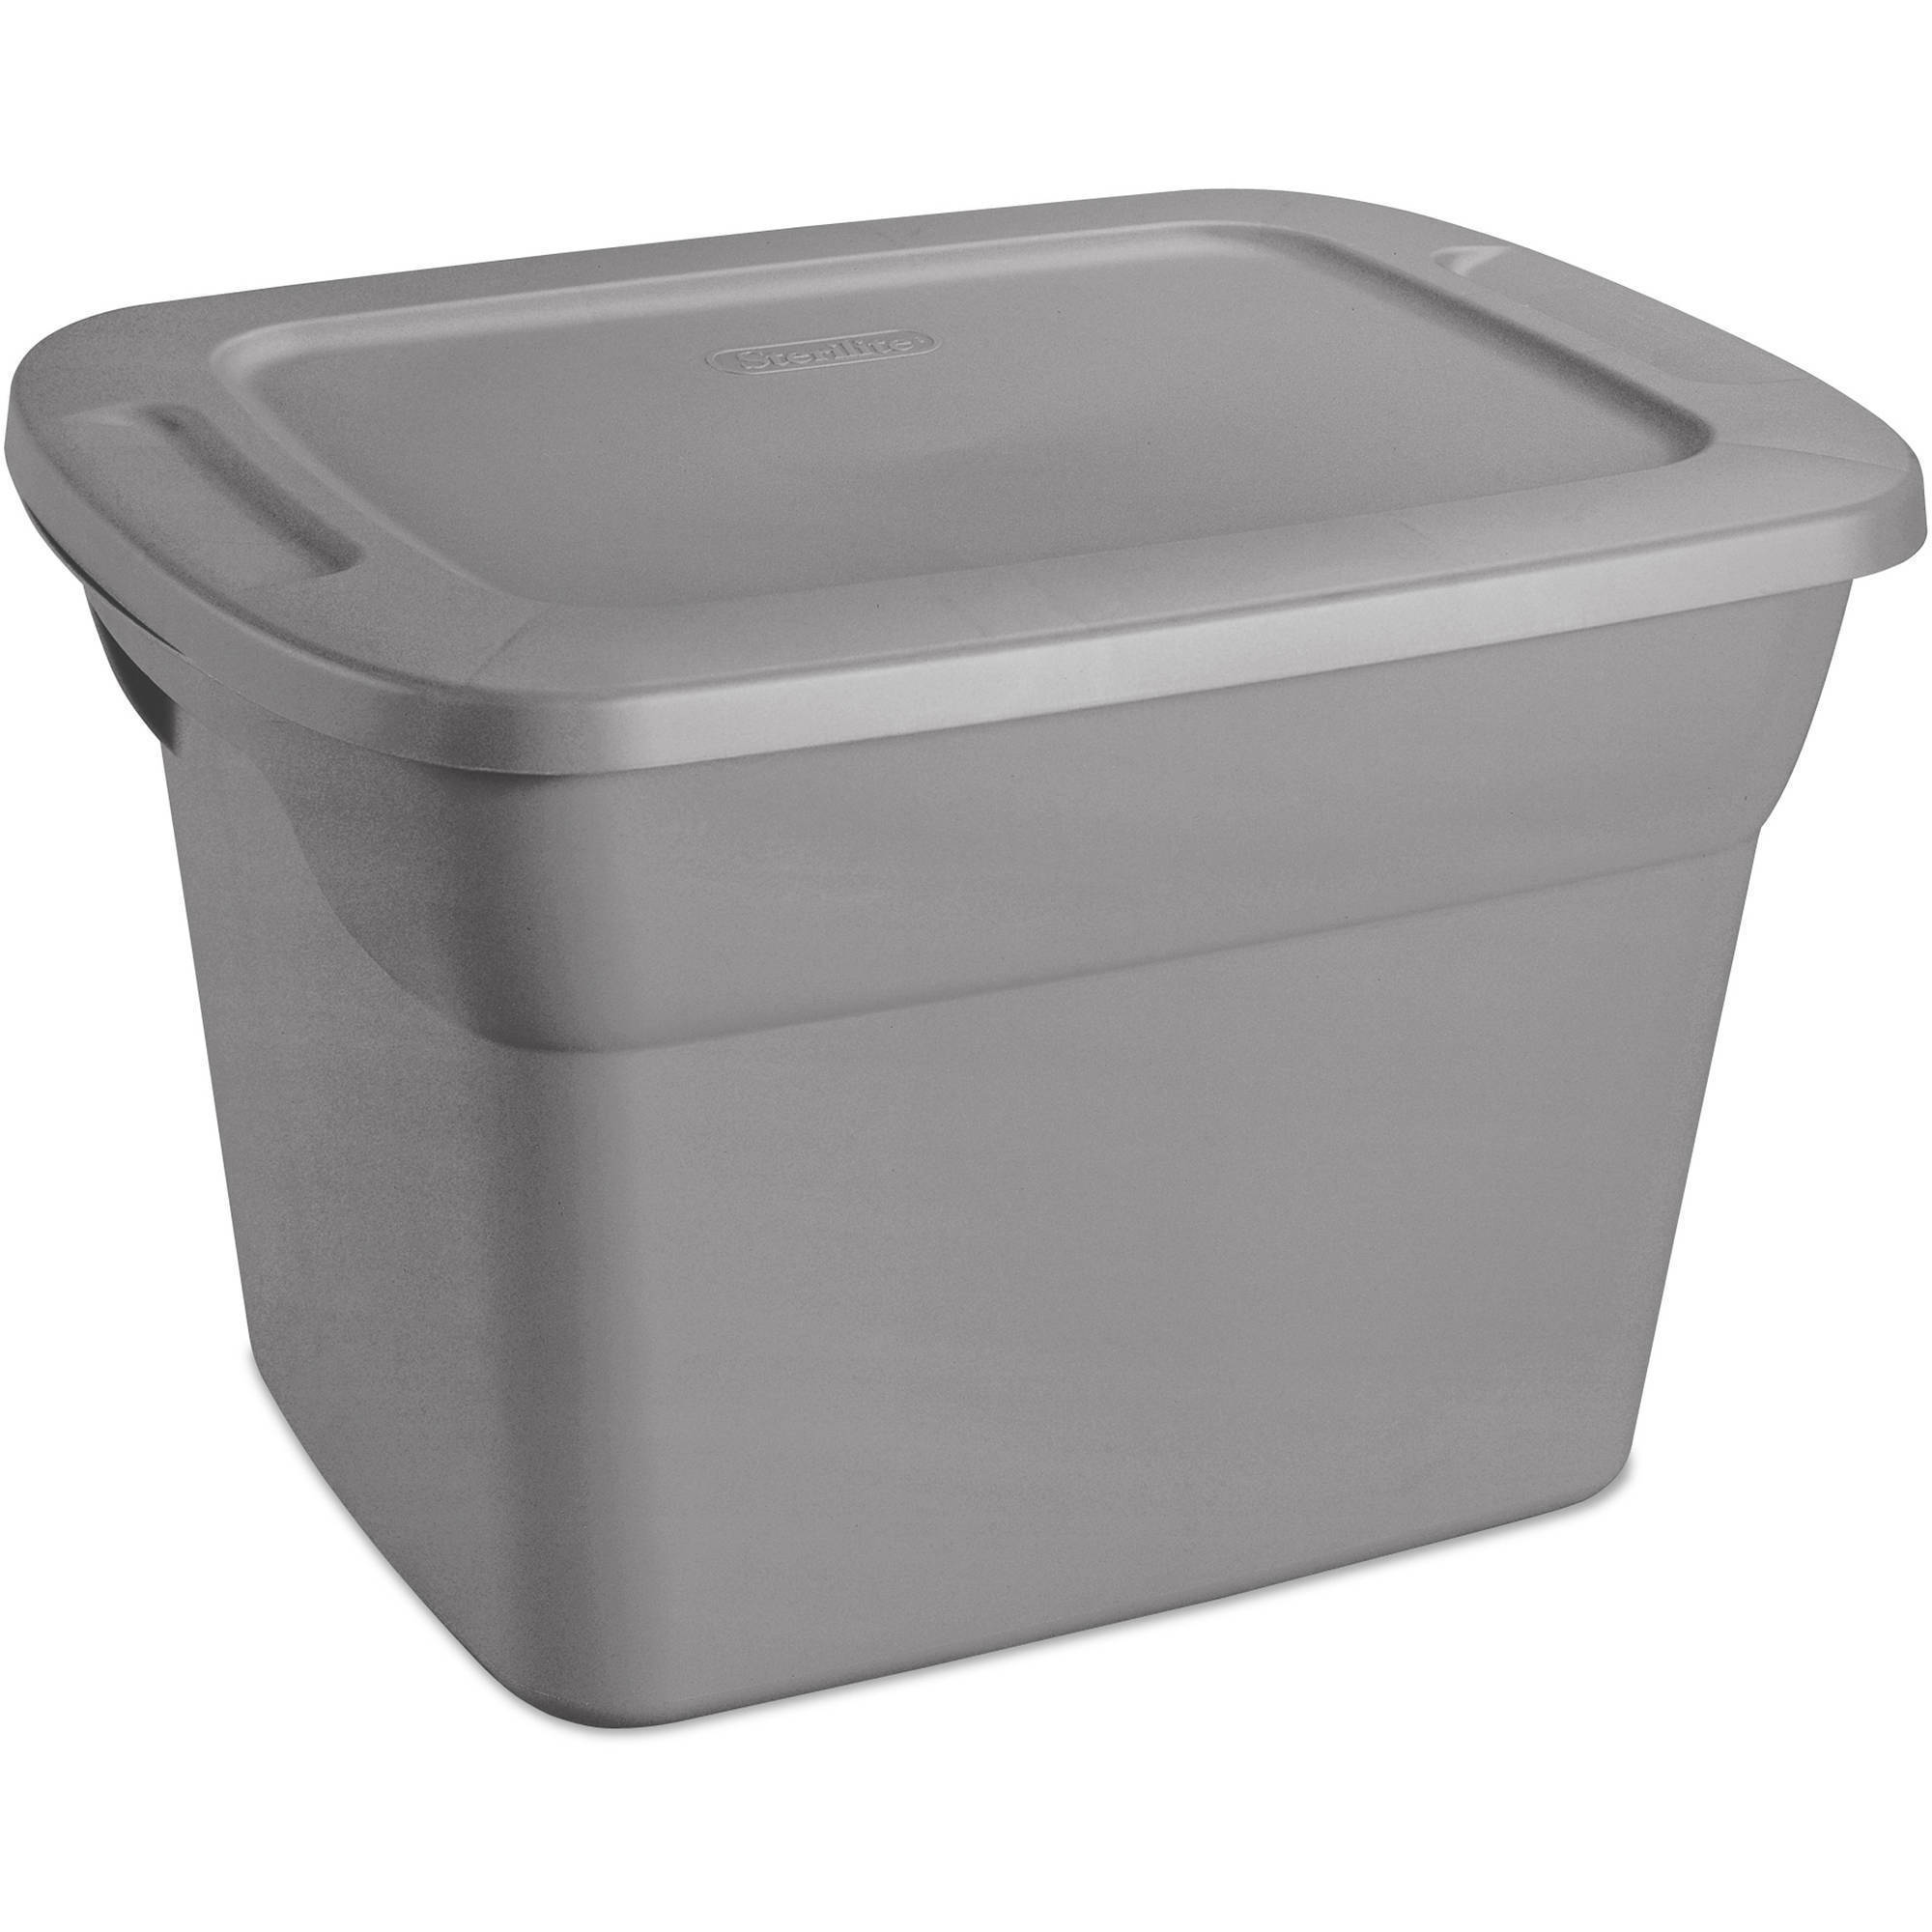 Sterilite Grey 18-Gallon (72-Quart) Storage Bin (Available in a Case of 8 or Single Unit)